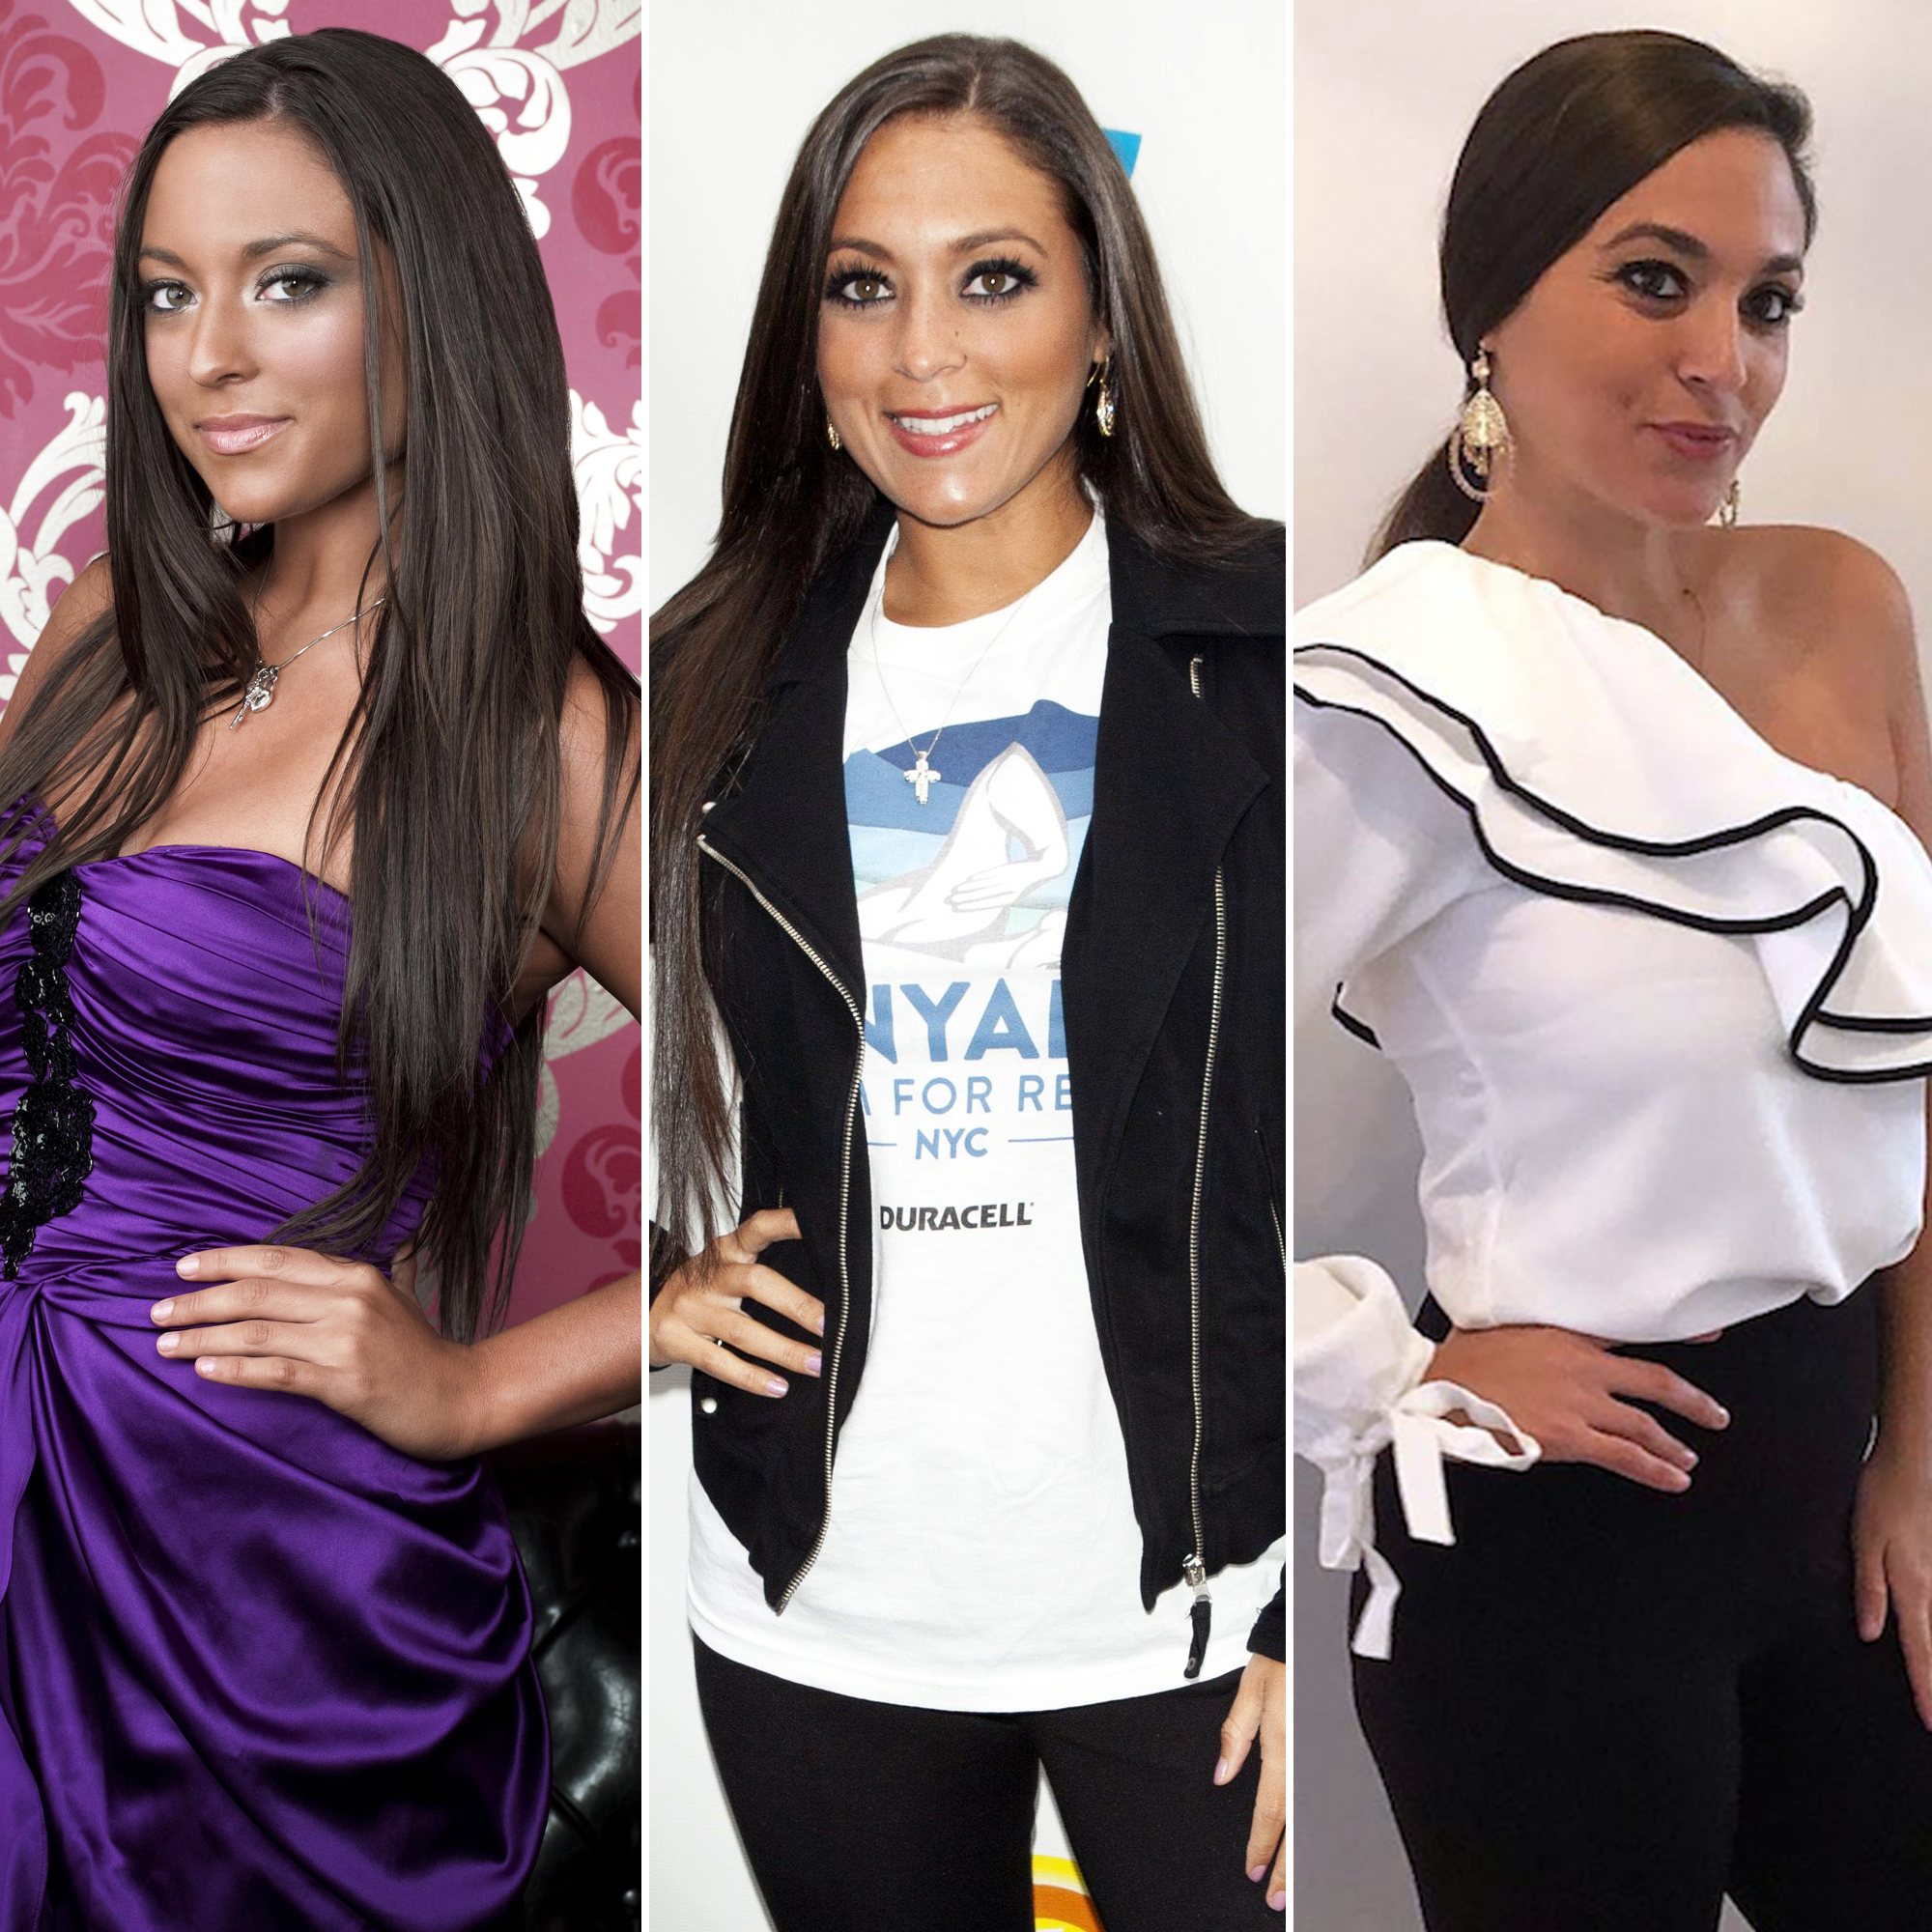 Sammi Giancola's Transformation: Her Life Since Leaving 'Jersey Shore'